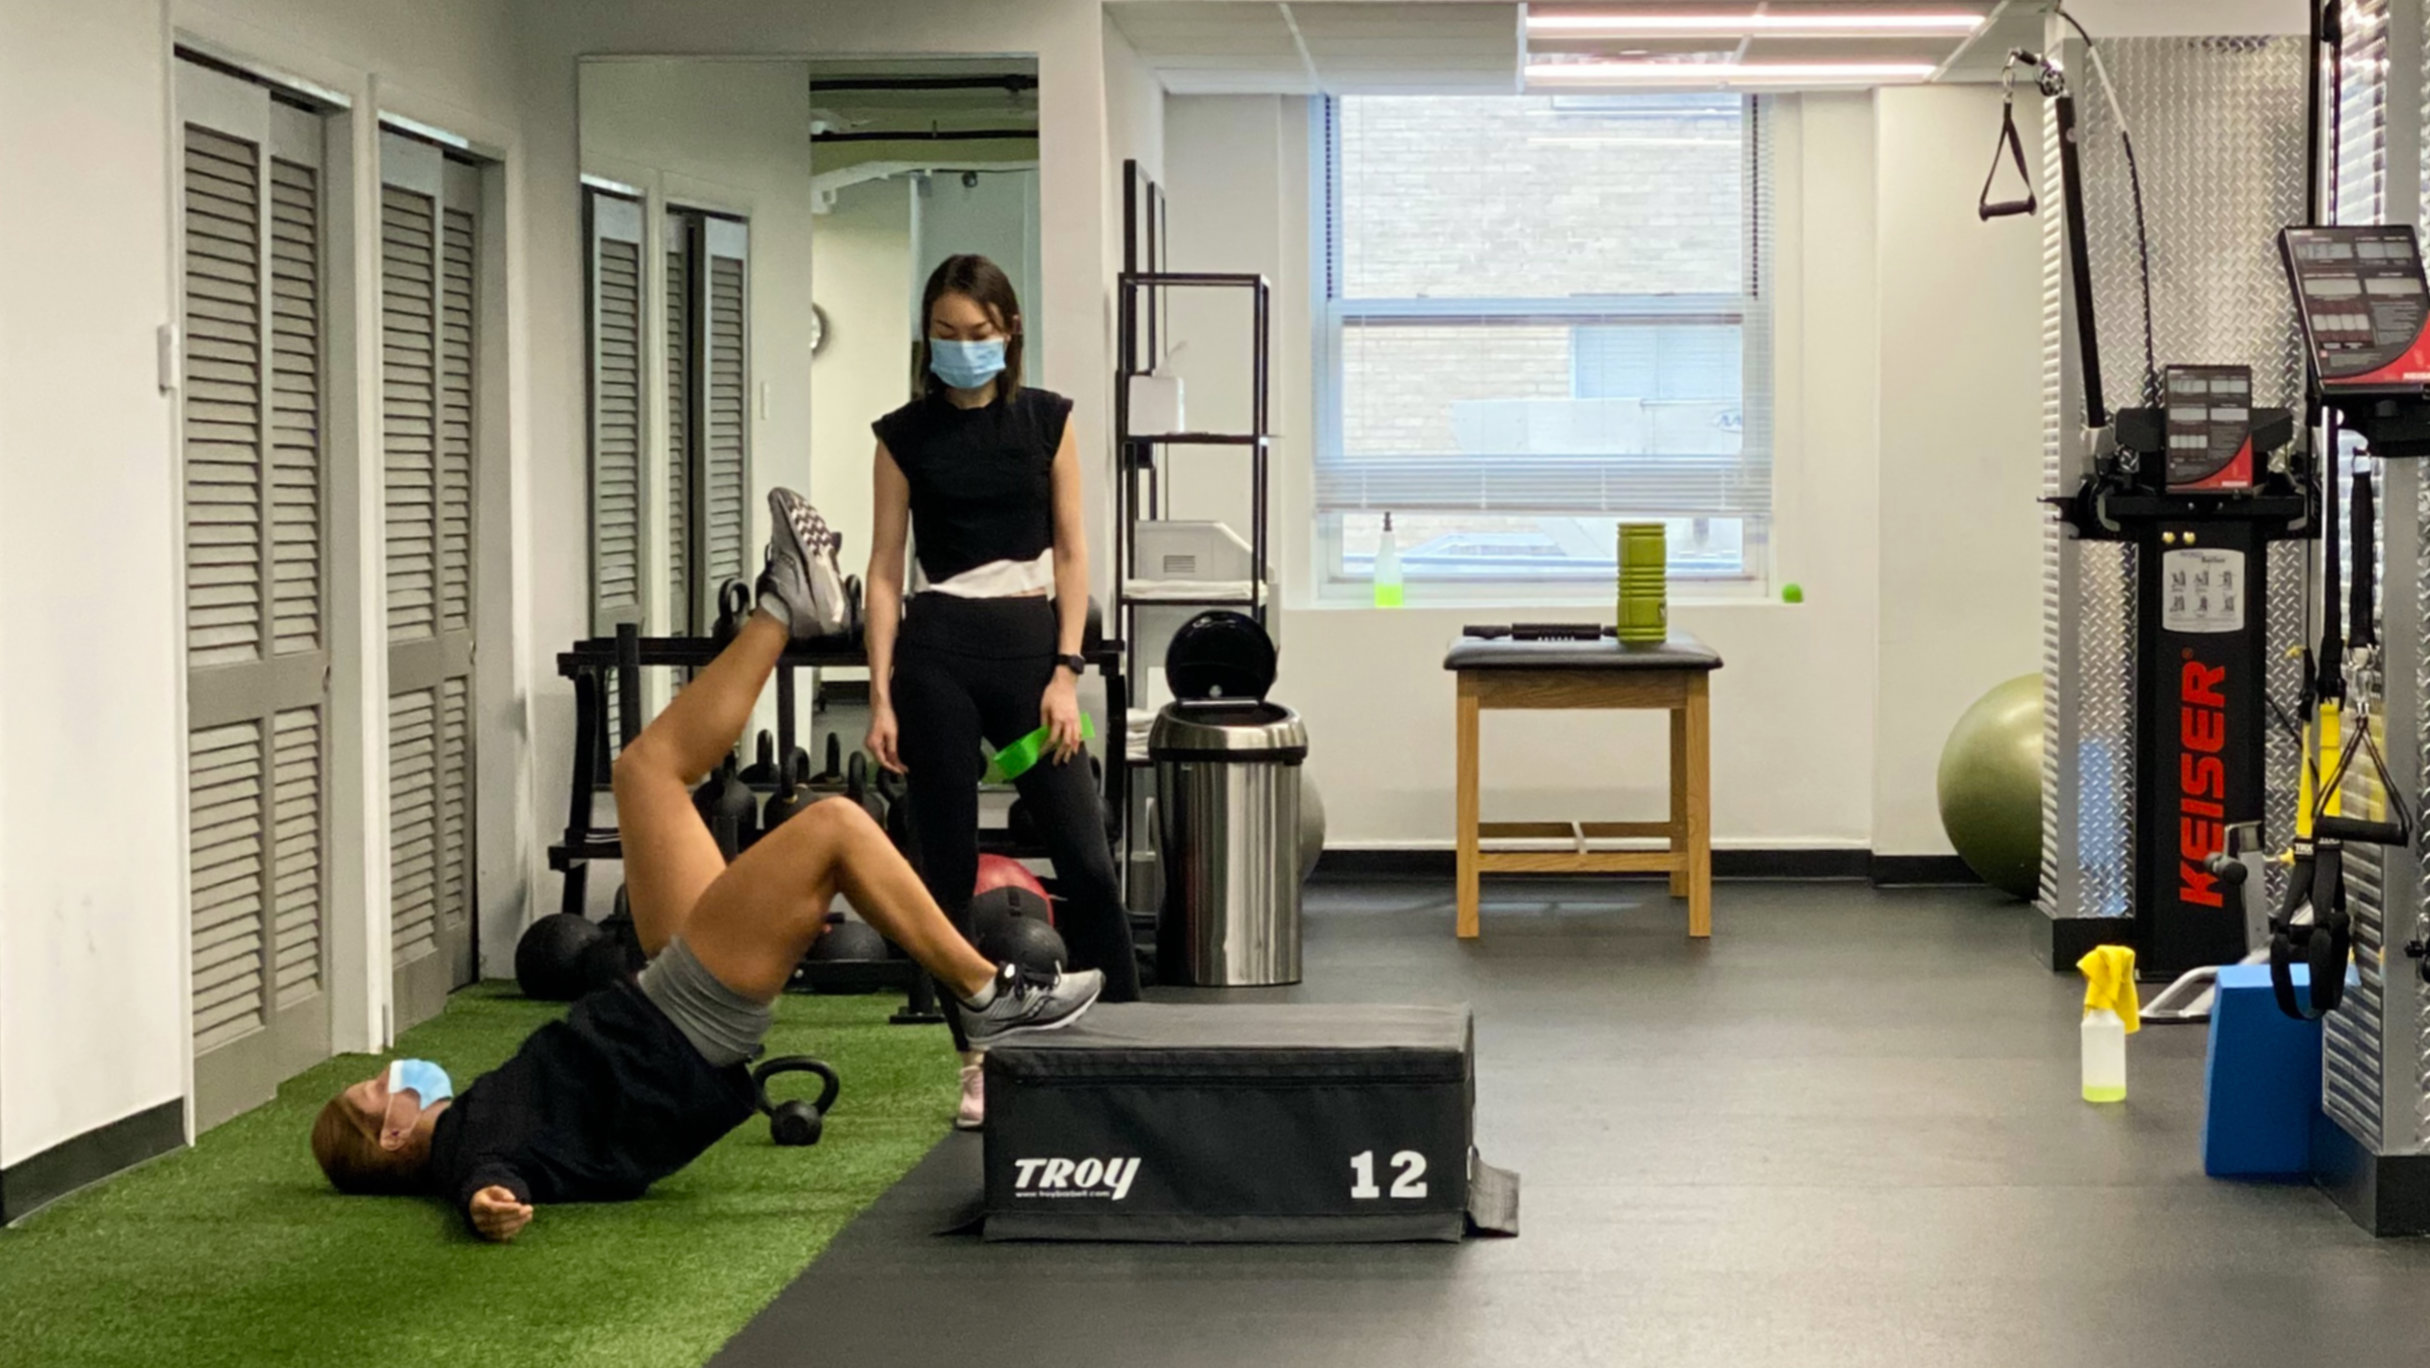 Center City Personal Trainer and Physical Therapy Practice